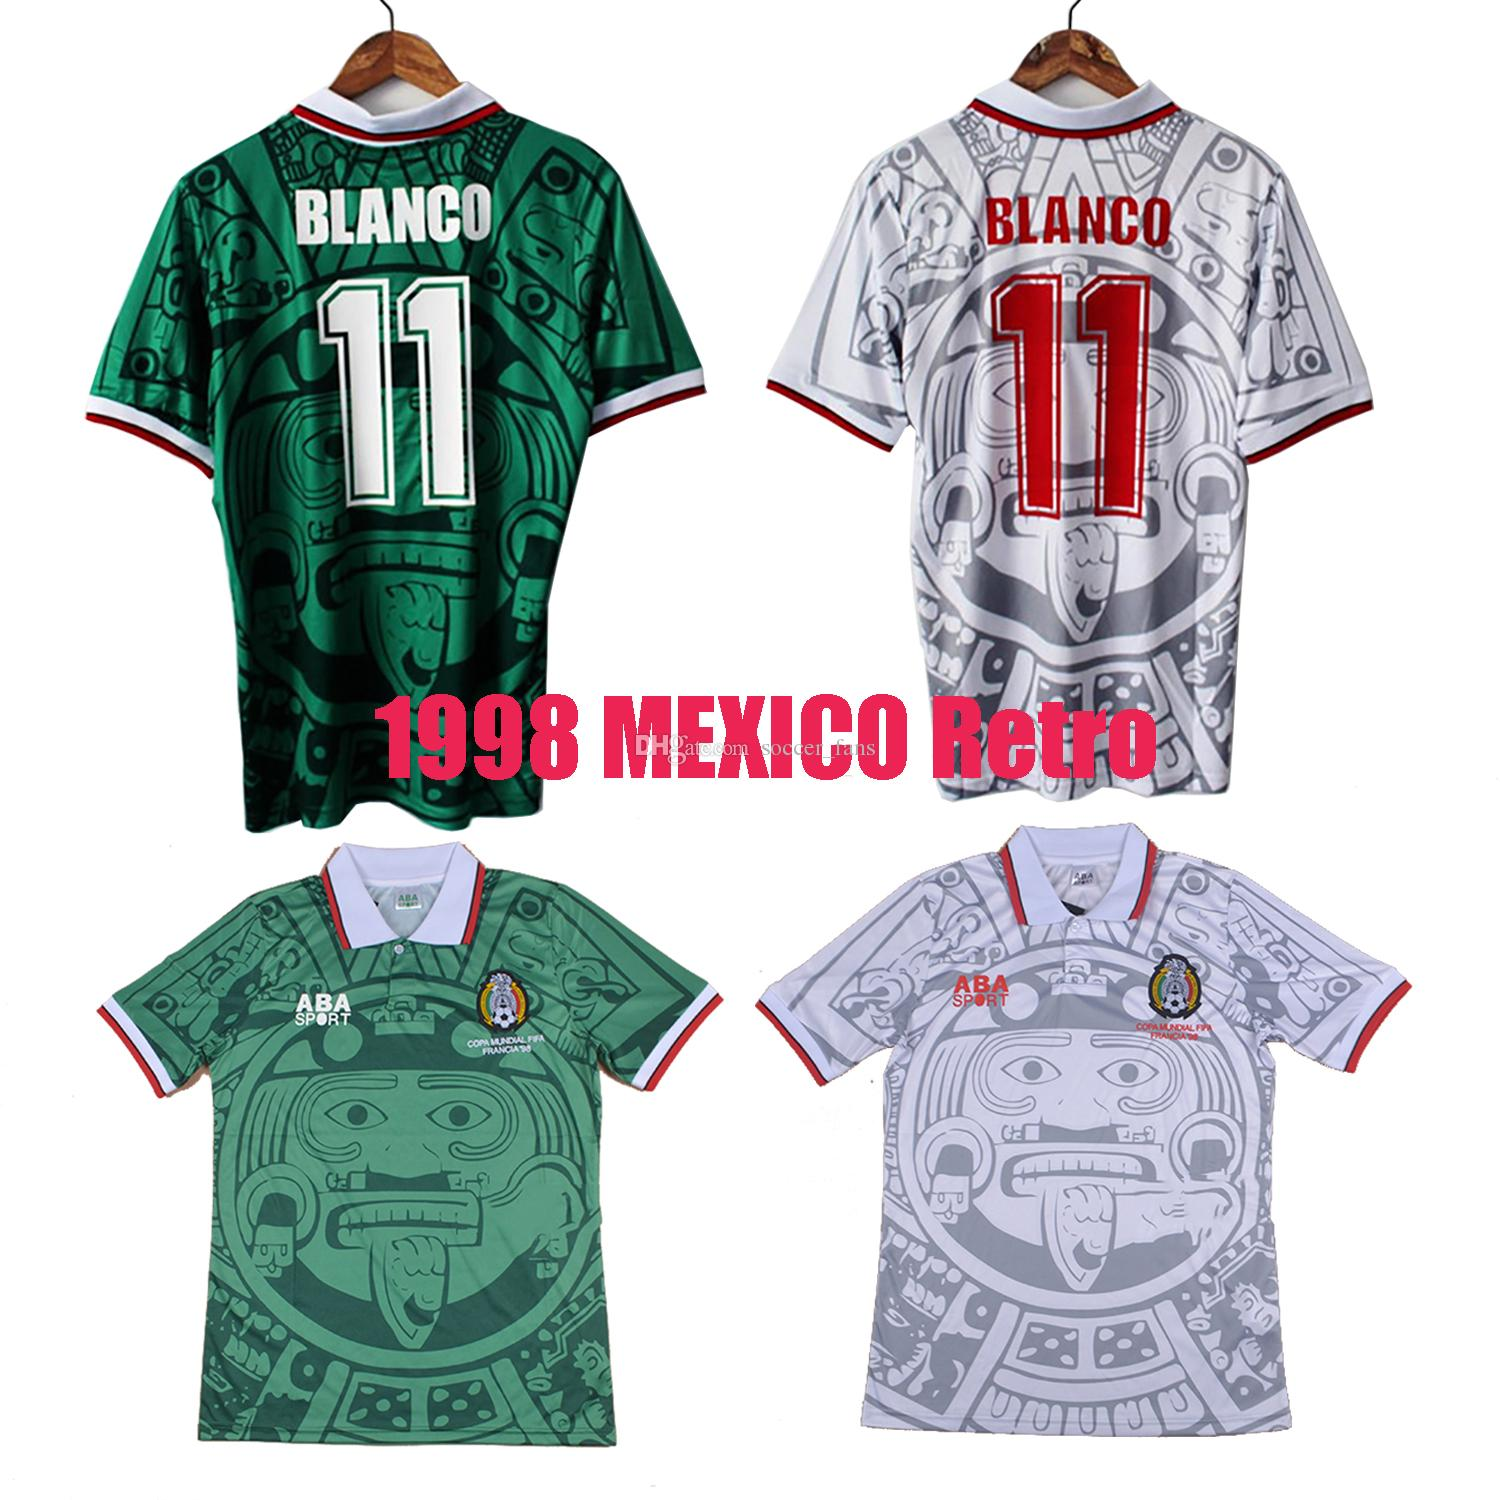 hot sale online 29340 072d2 1998 MEXICO RETRO VINTAGE BLANCO Thailand Quality soccer jerseys uniforms  Football Jerseys shirt Embroidery Logo camiseta futbol